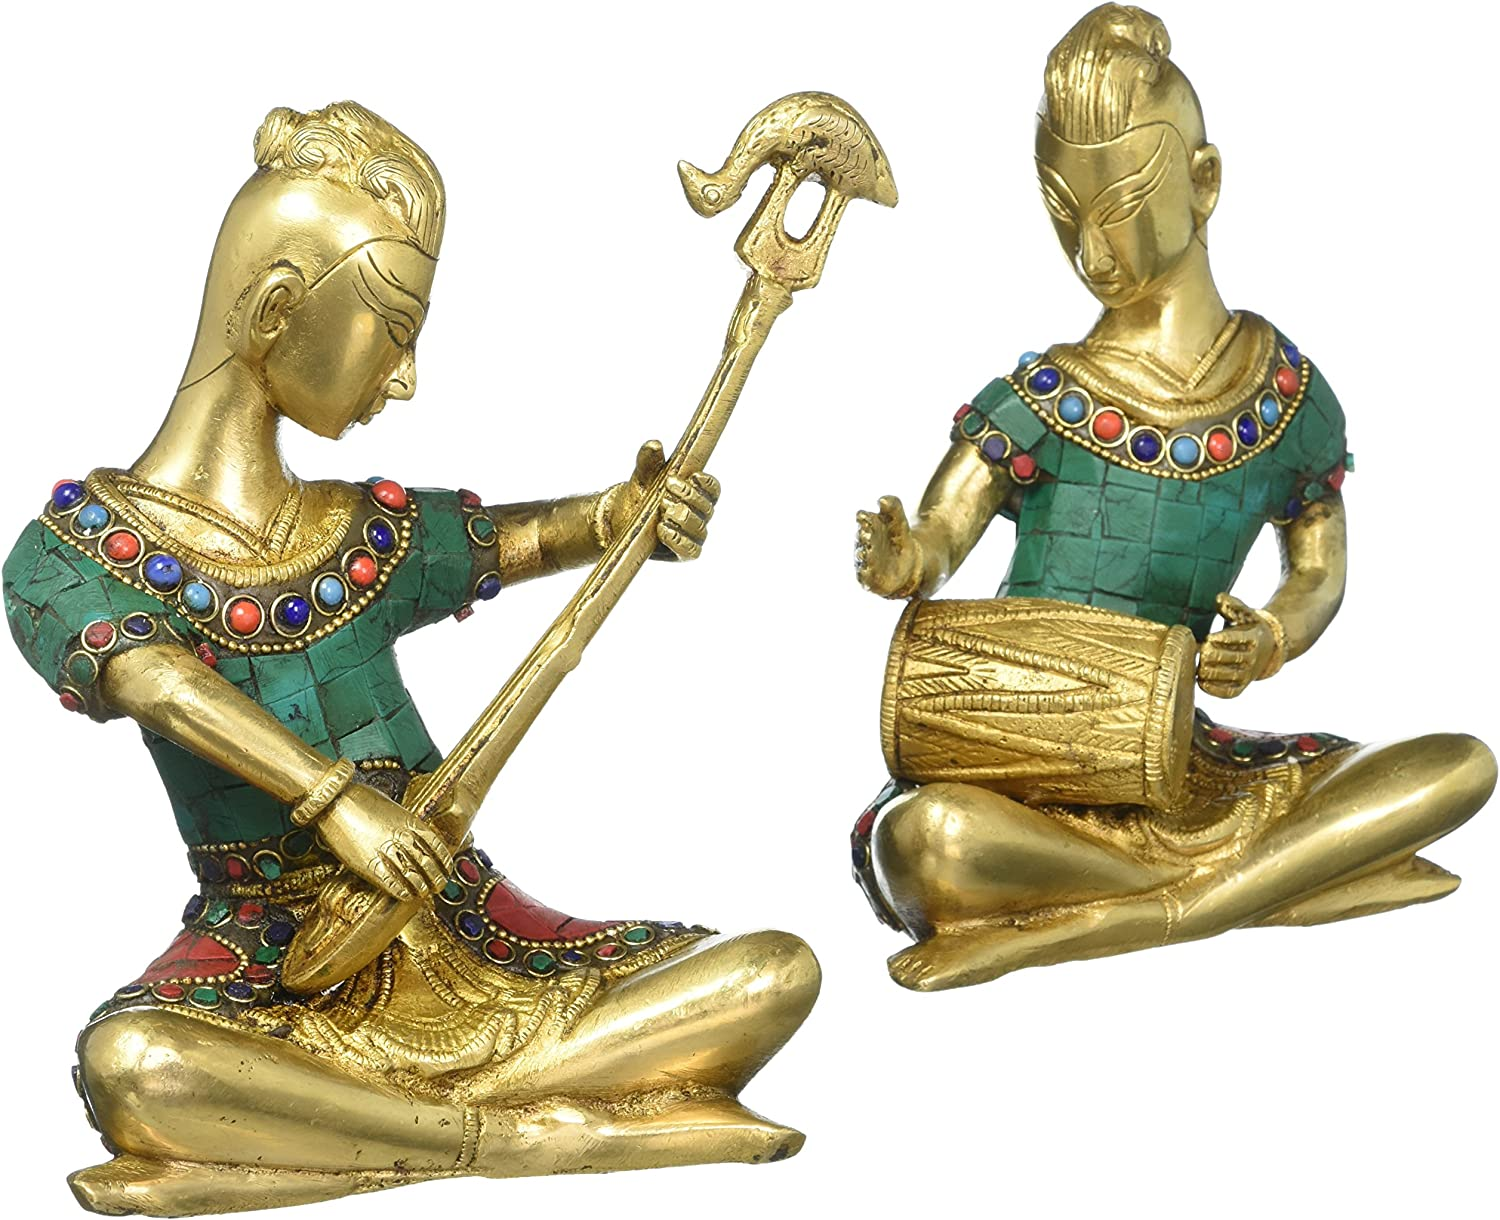 CraftVatika Musical Ladies with Inlay Work Pair of Brass Statues, 7 Inches Height